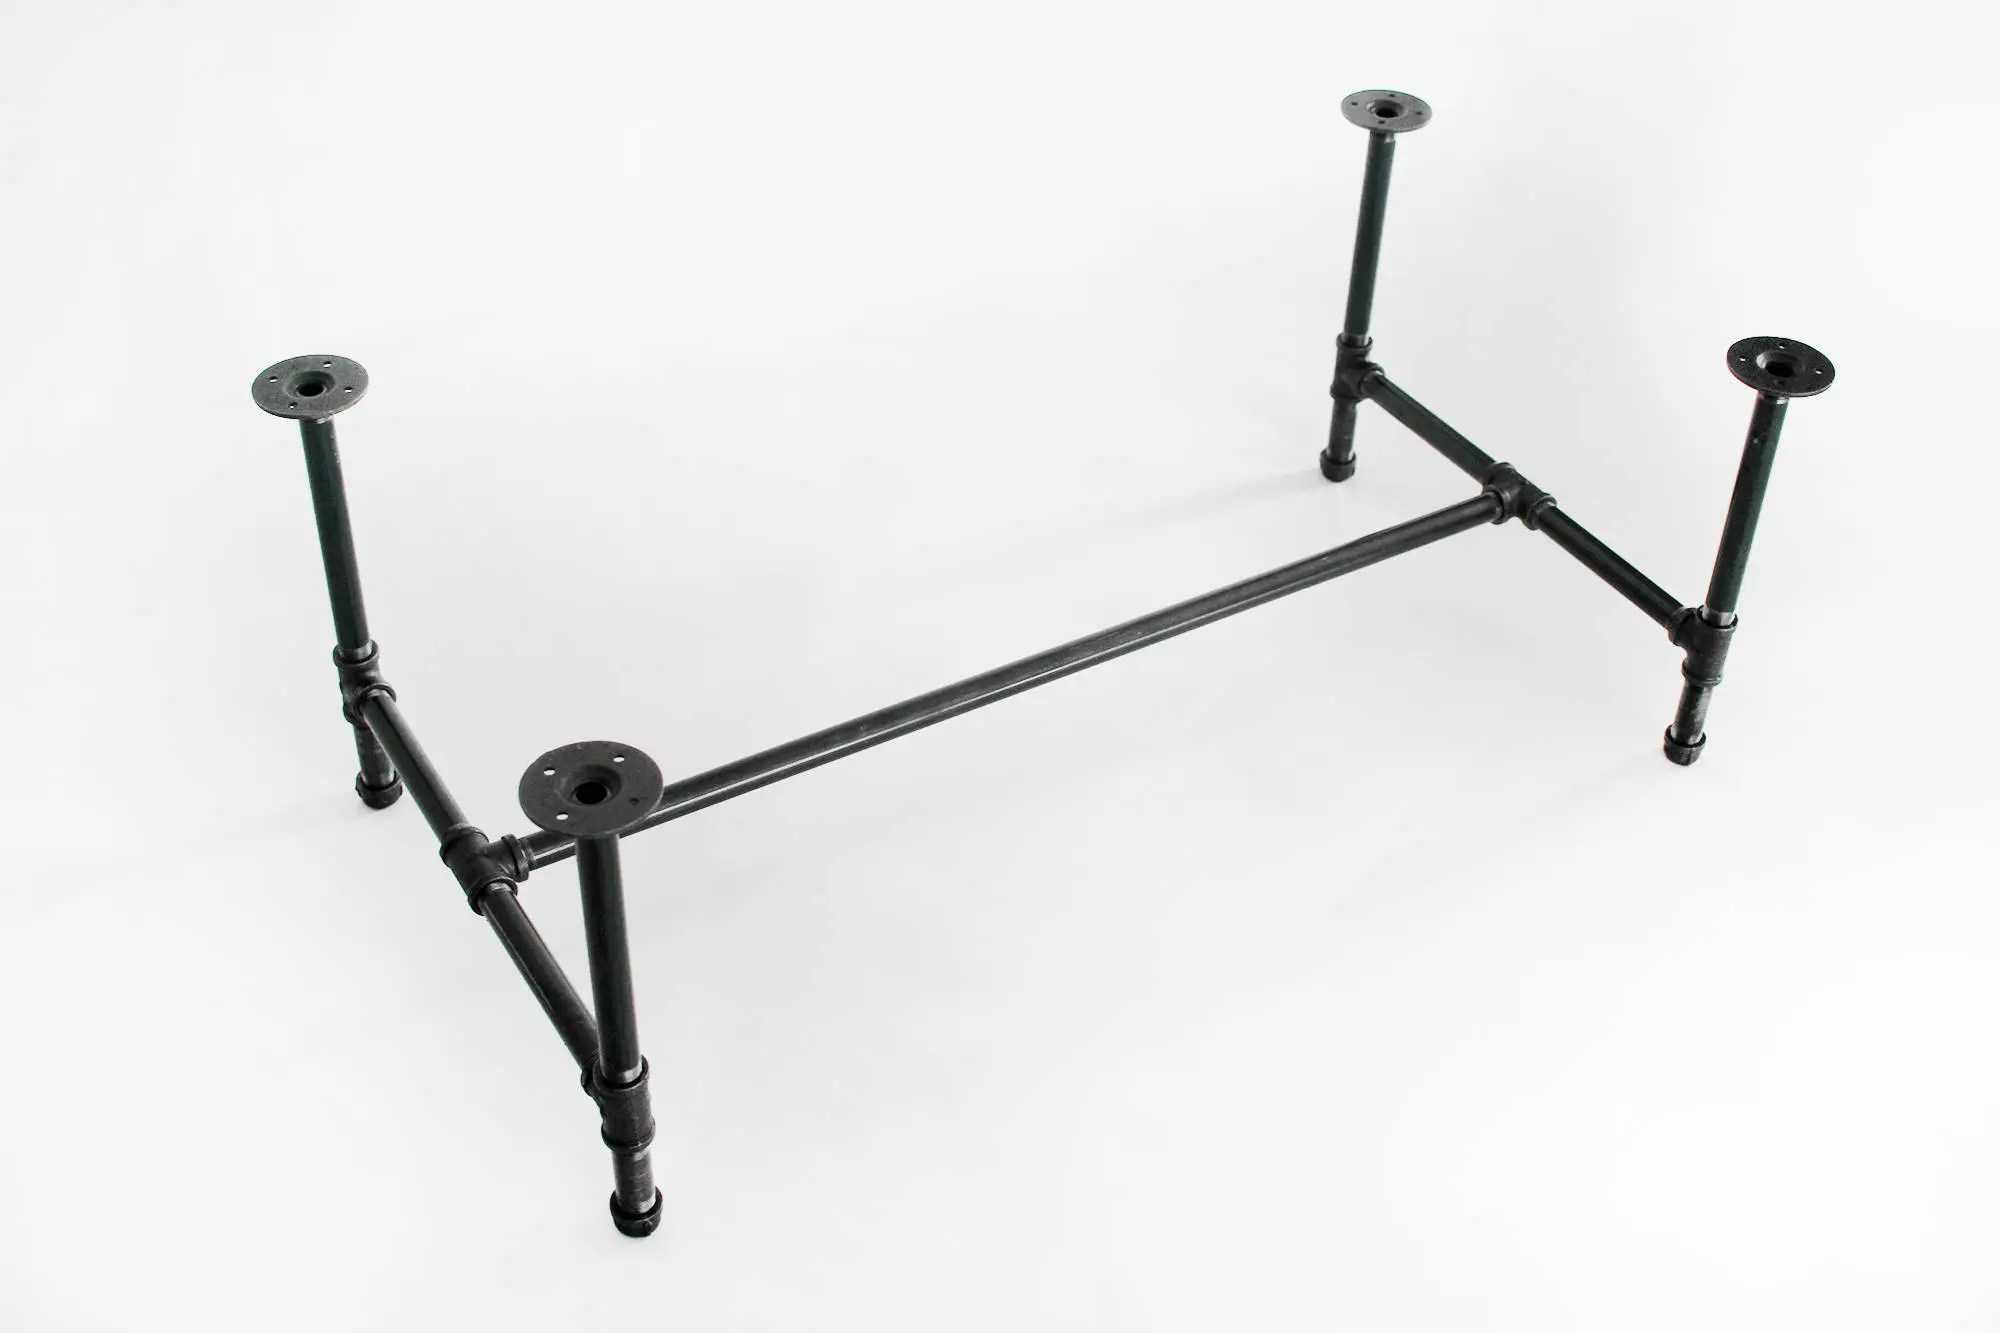 industrial coffee table base 1 black pipe table legs diy stand customizable furniture made to order metal pipe frame